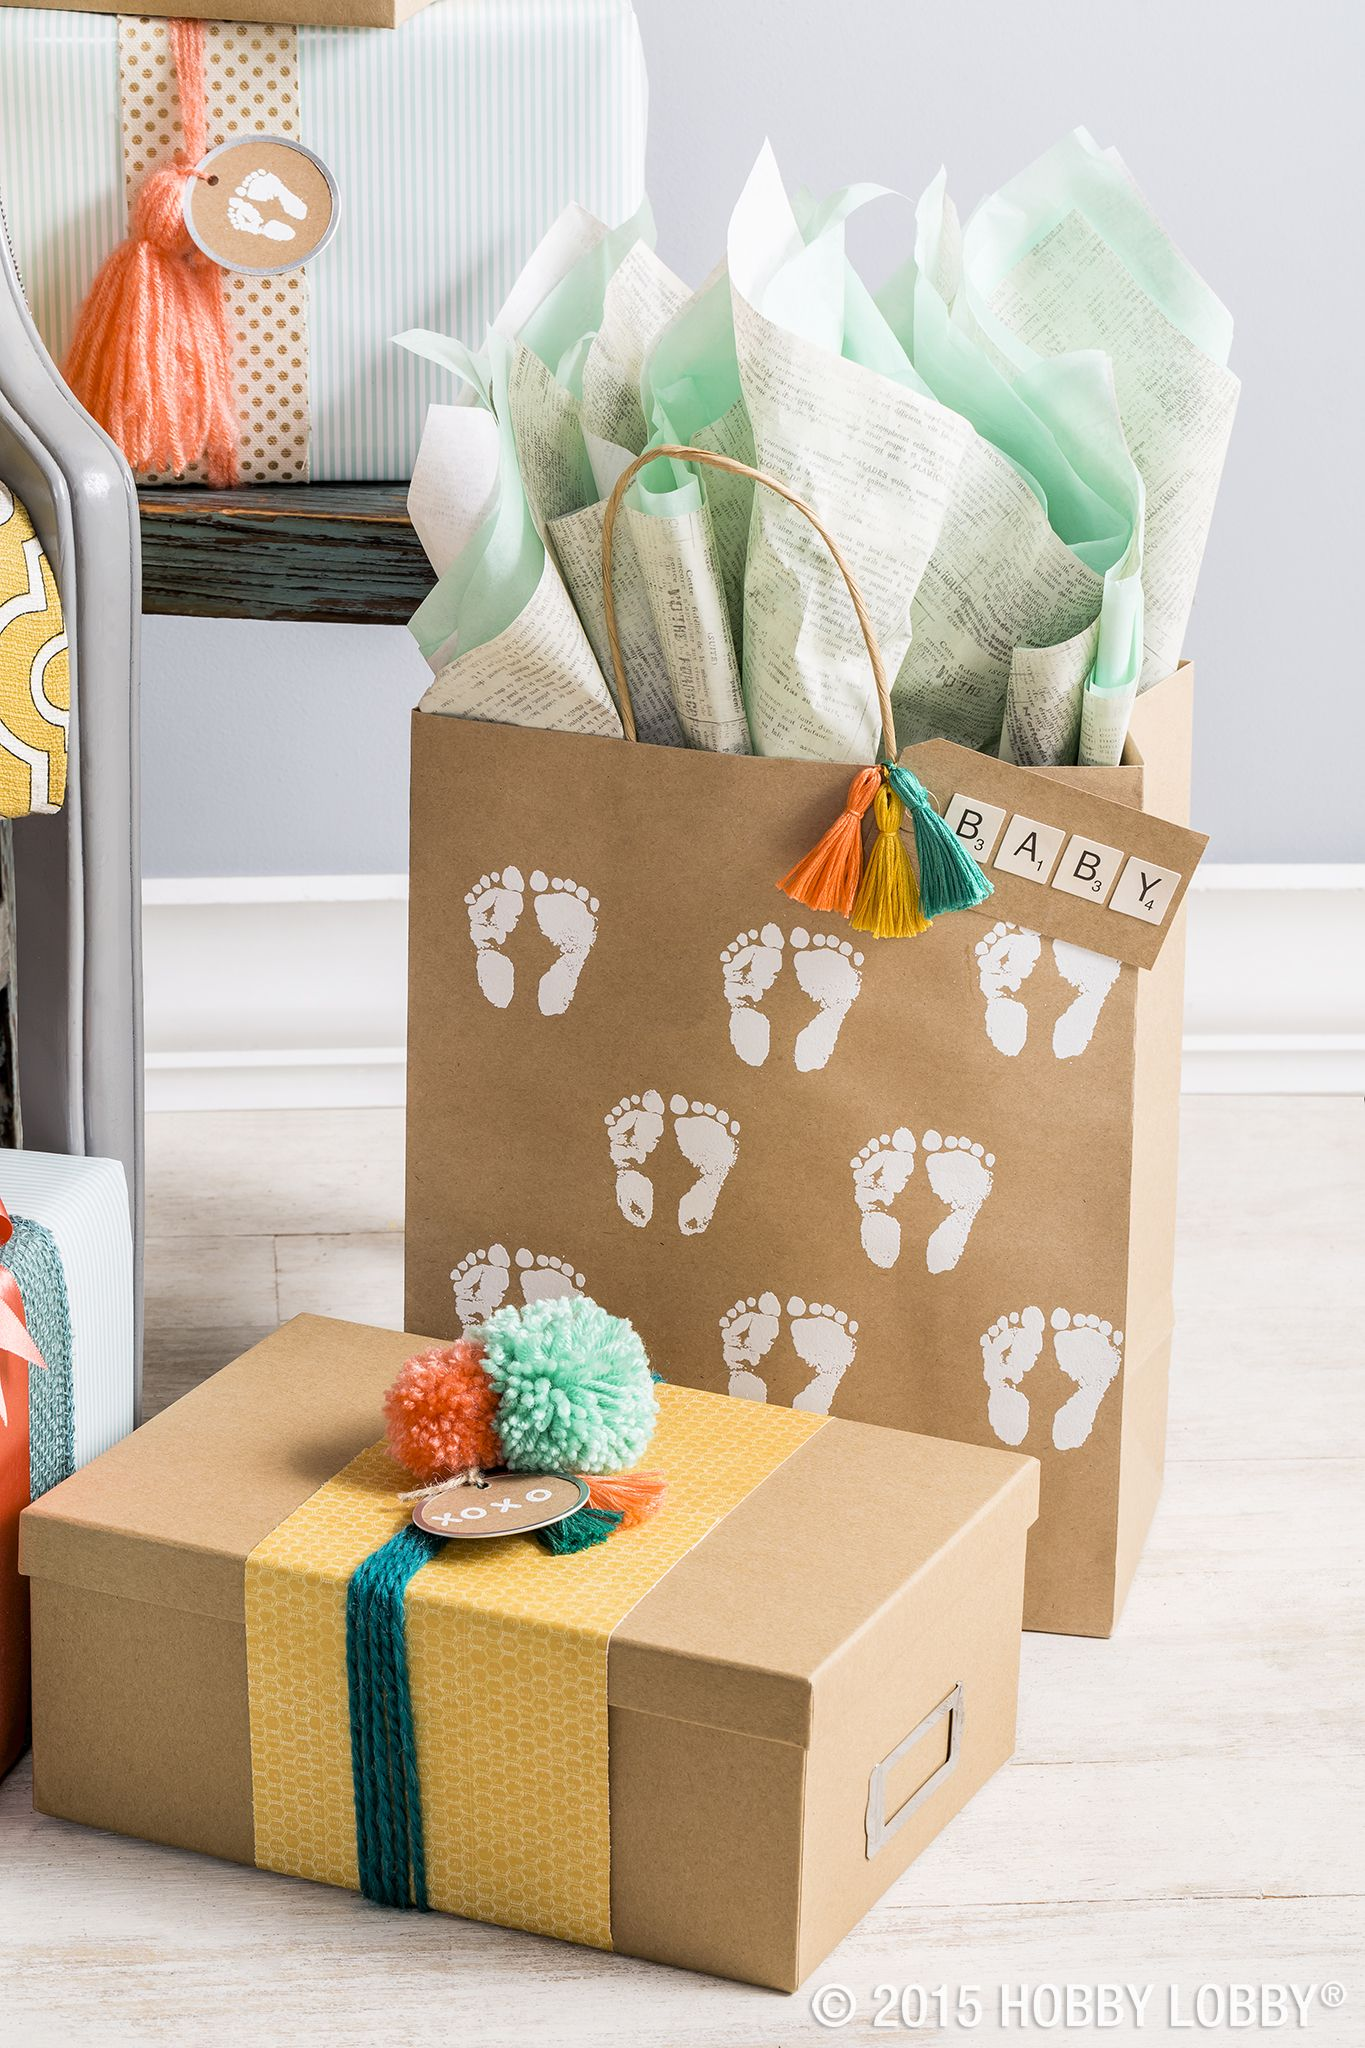 Stamp Simple Brown Wrapping Boxes And Bags For A Lovely Diy Baby